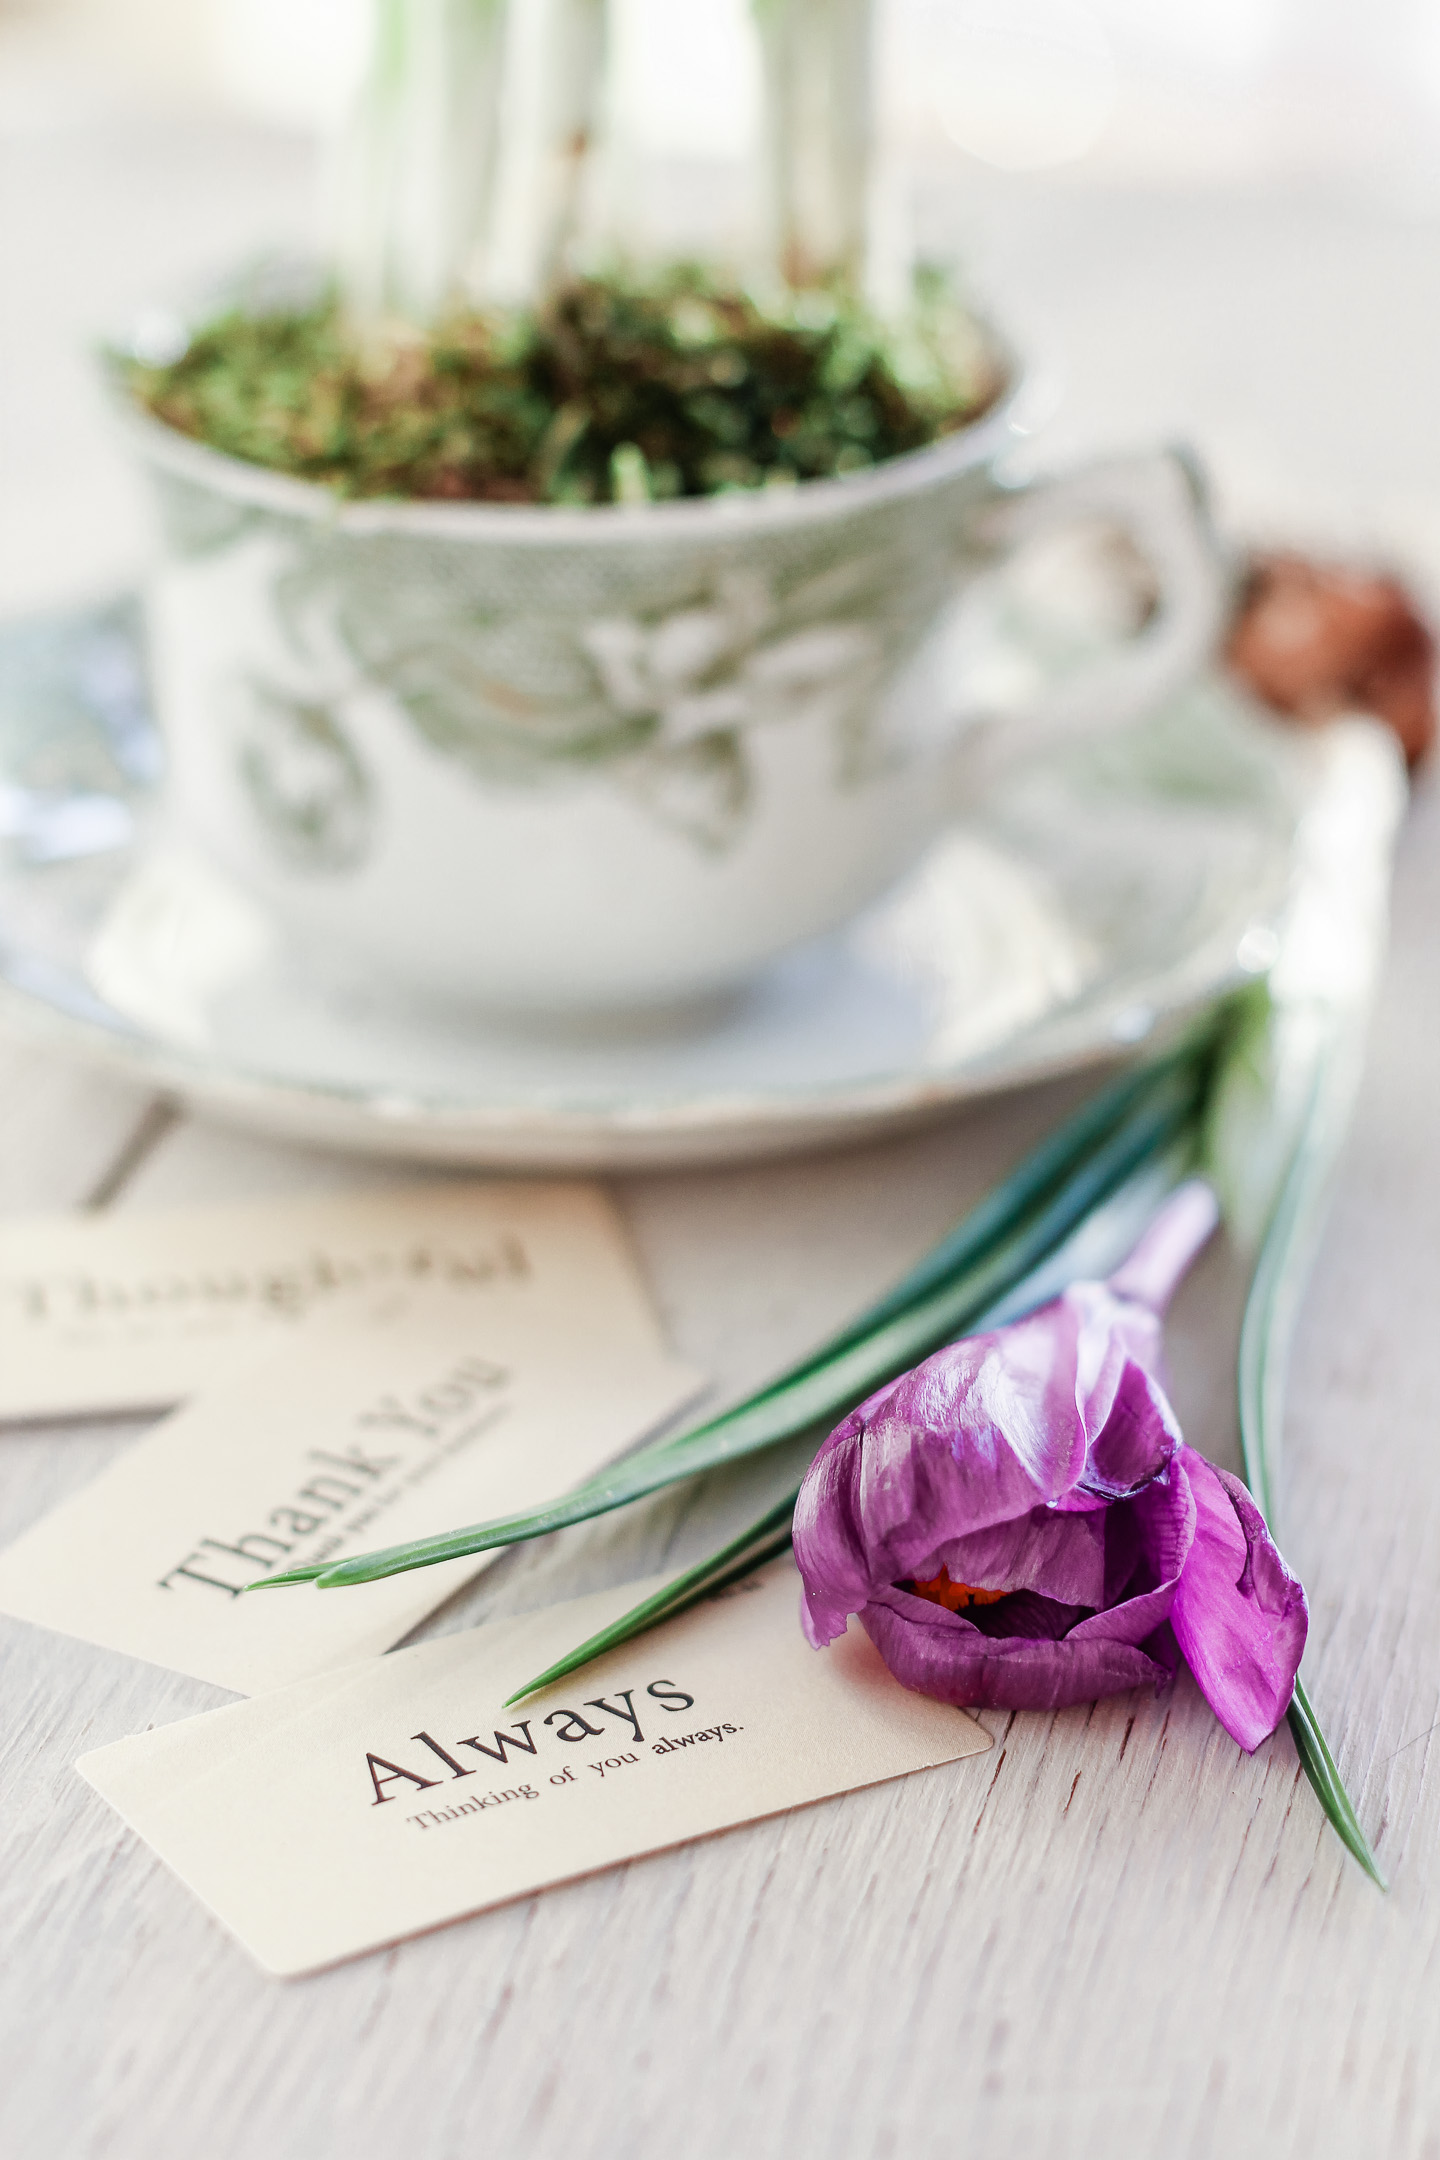 A teacup planted with flowers and a crocus bloom.